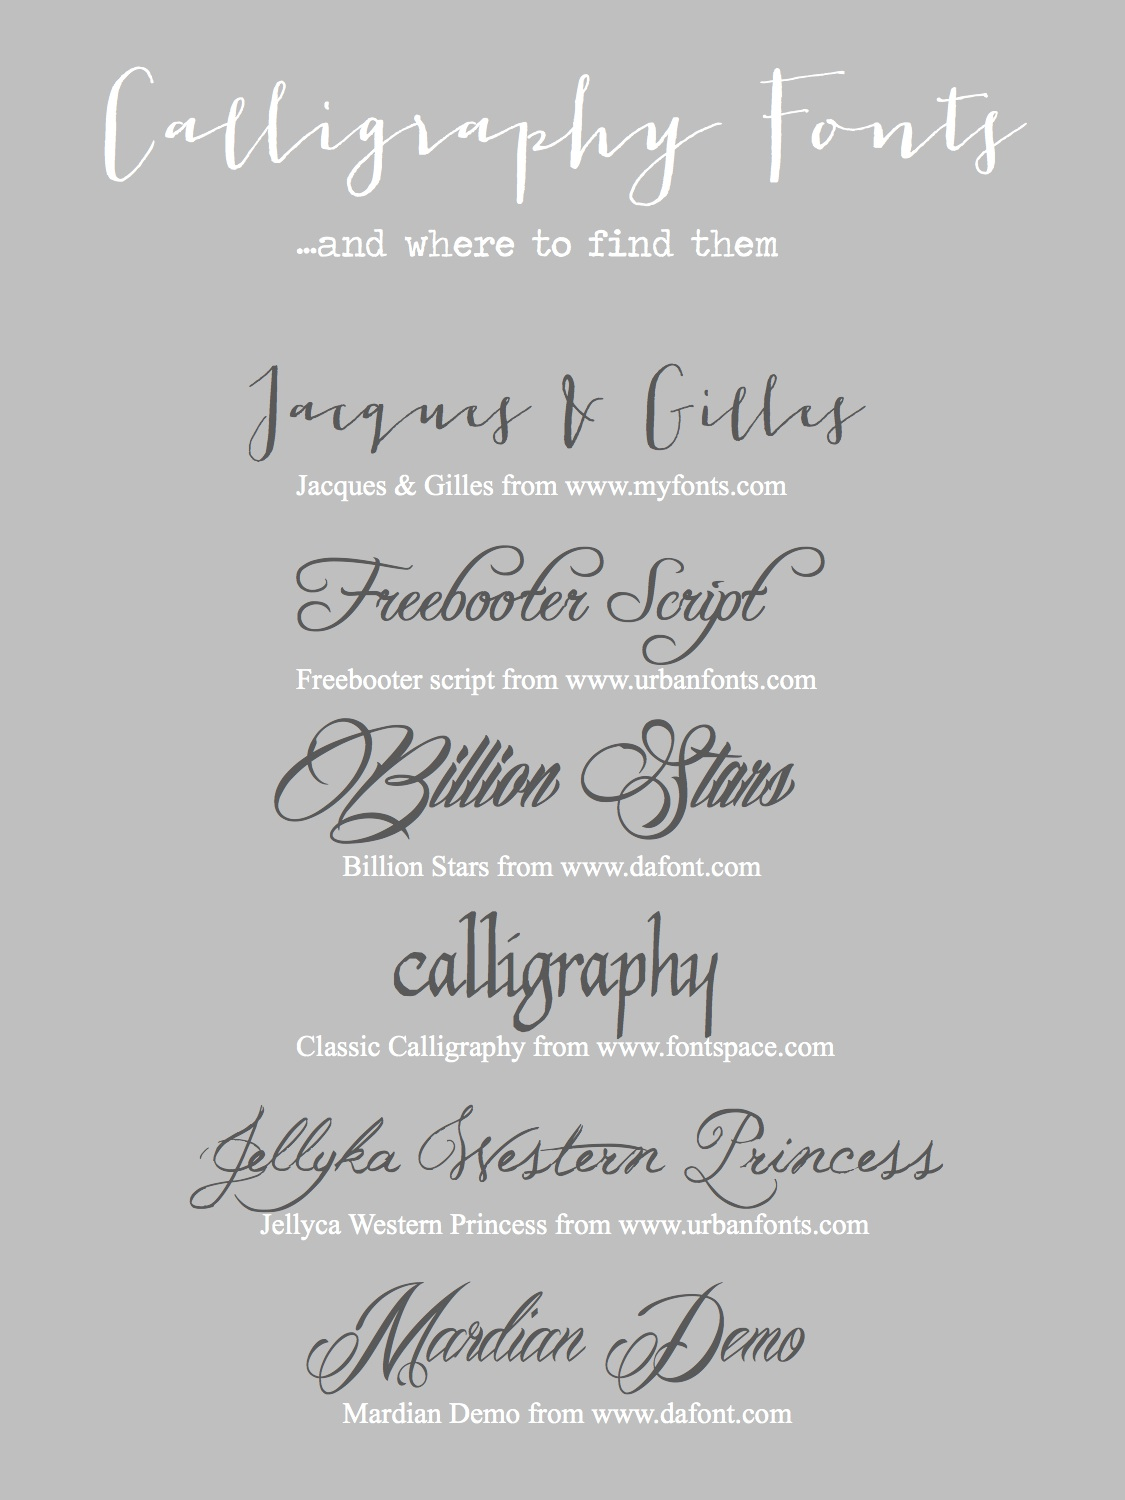 The cheats guide to calligraphy or how to acquire Calligraphy scripts